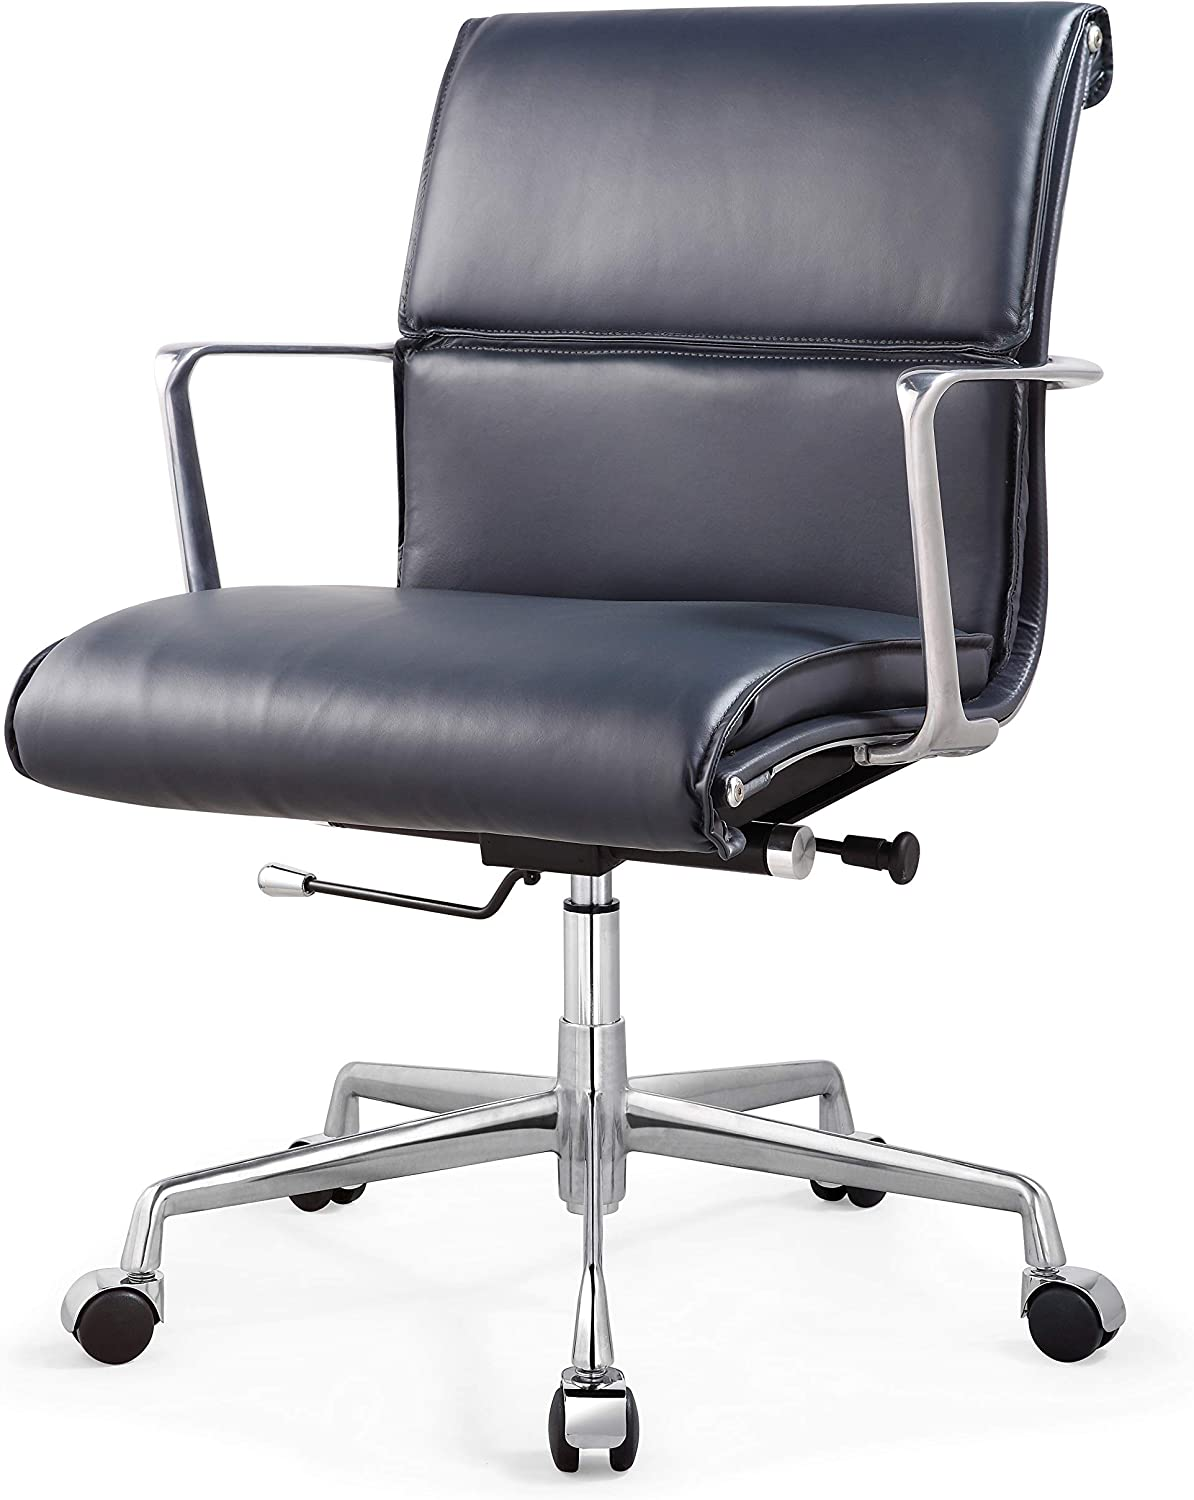 MEELANO M347 Home Office Chair, Navy Blue